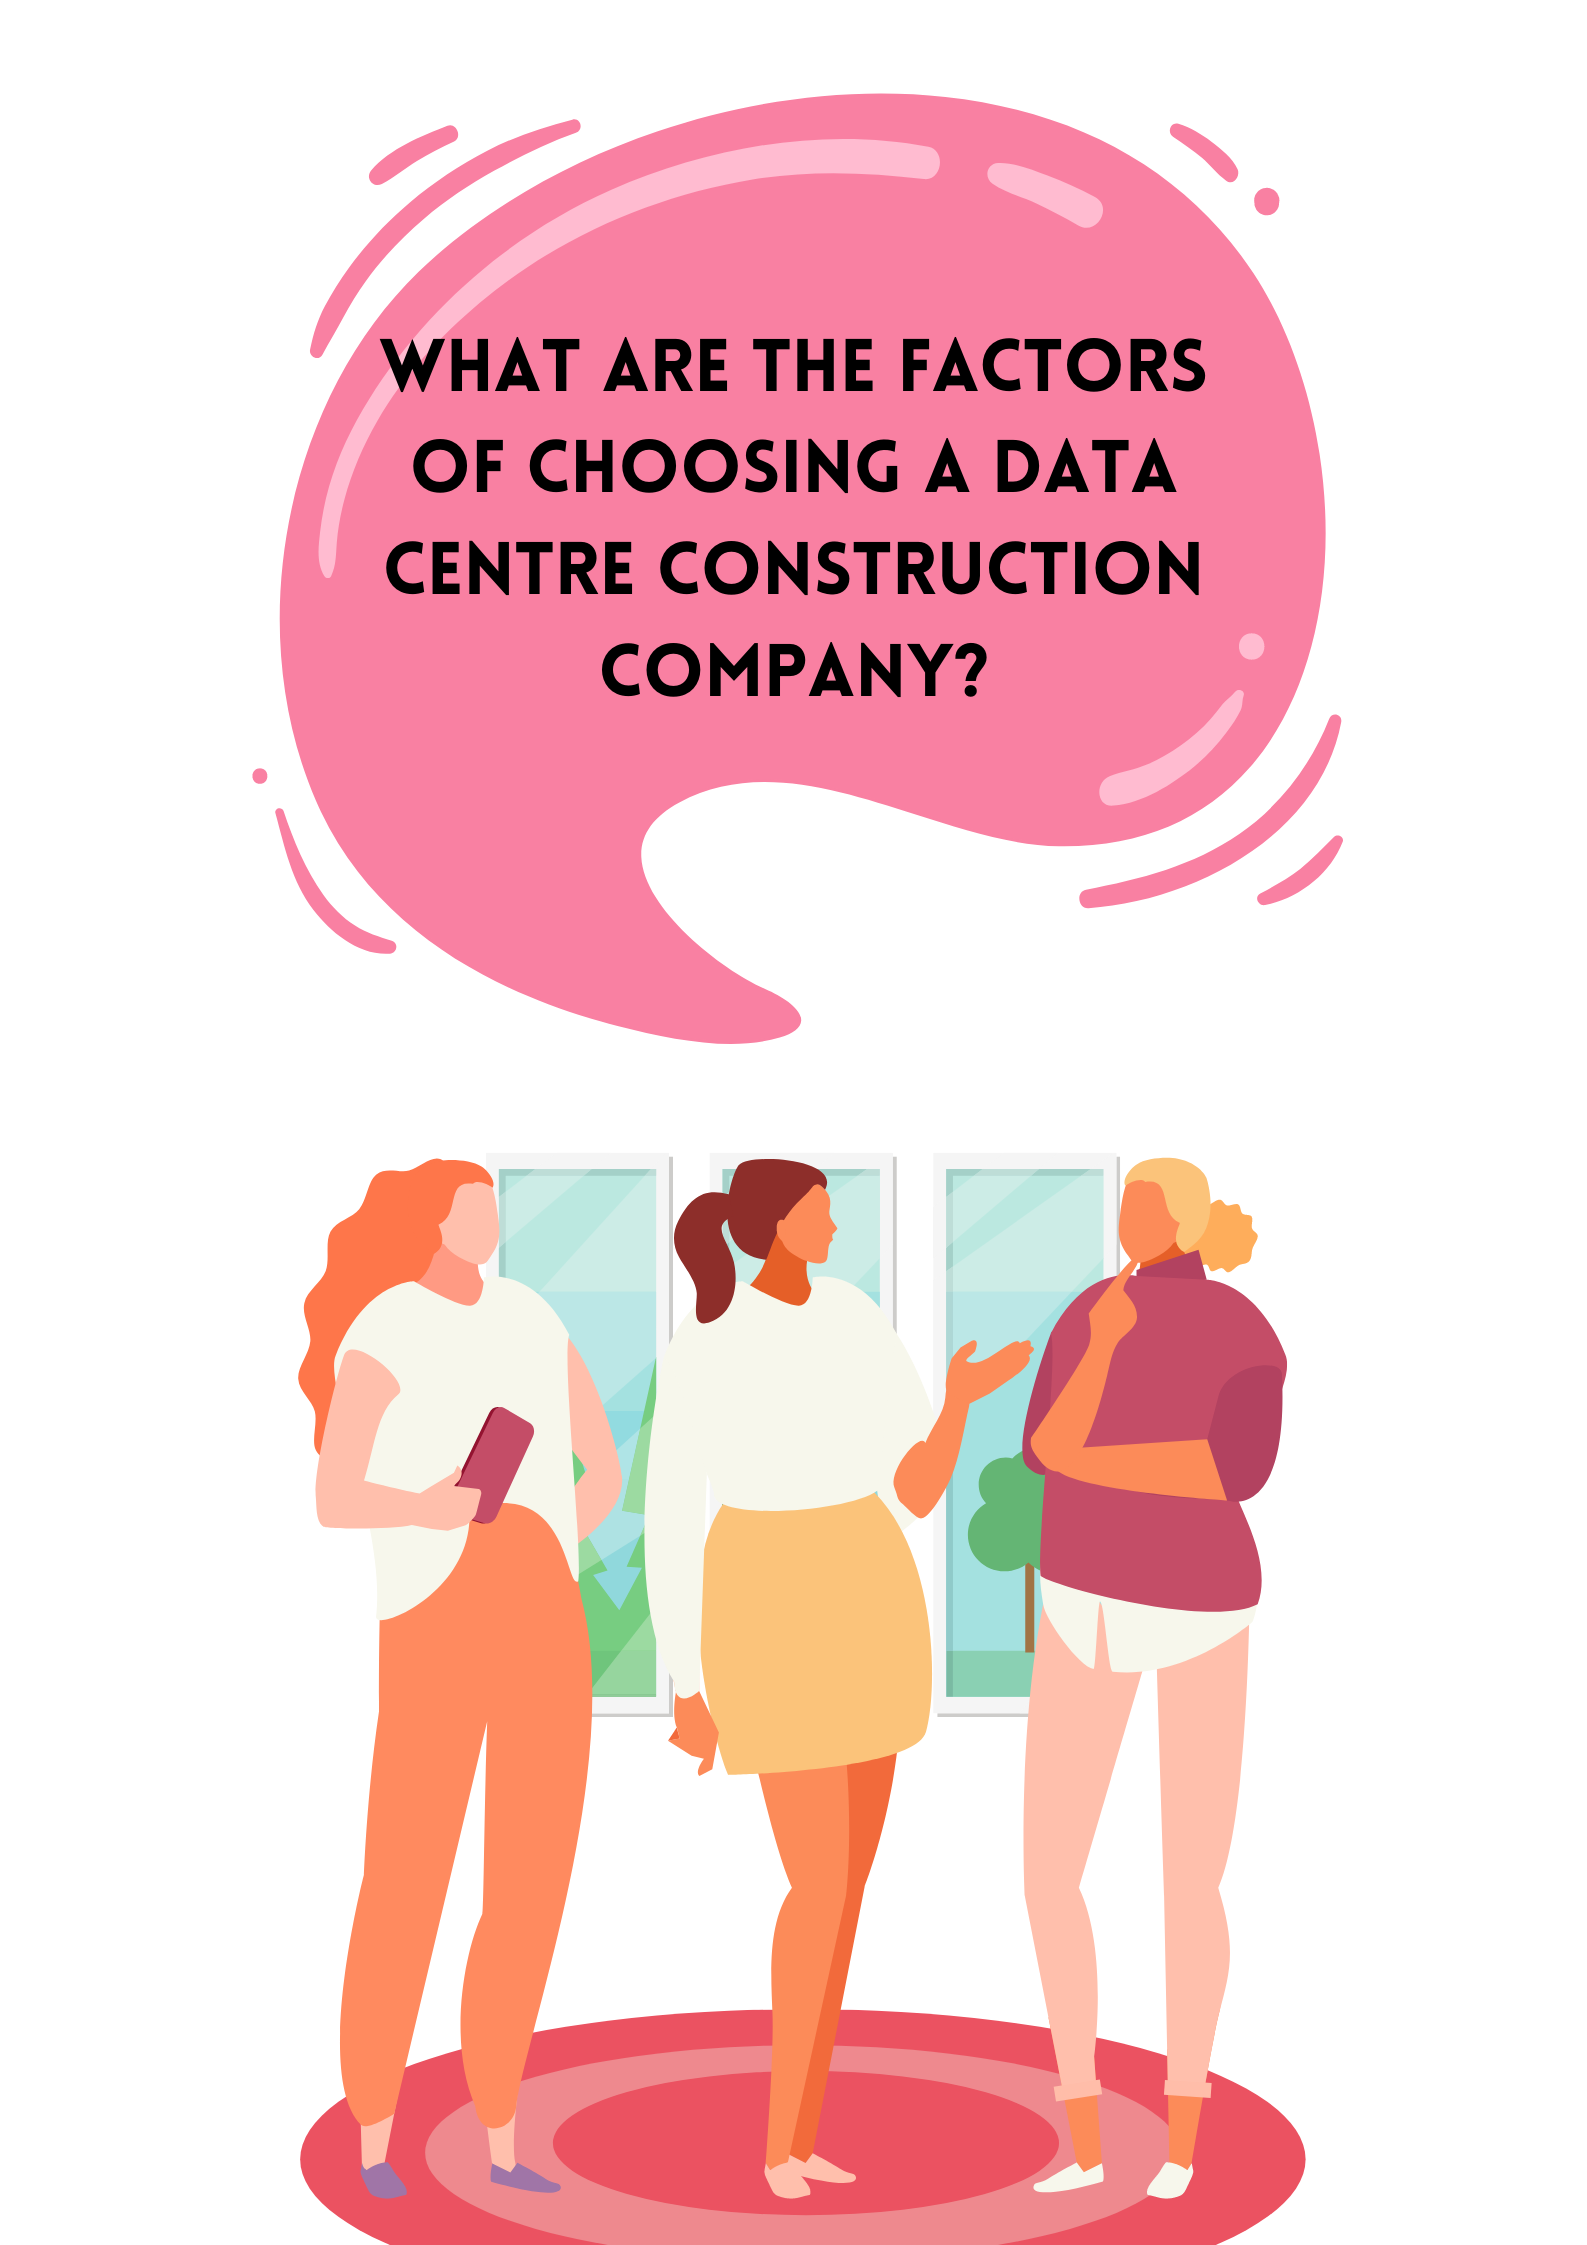 What-Are-the-Factors-of-Choosing-a-Data-Centre-Construction-Company